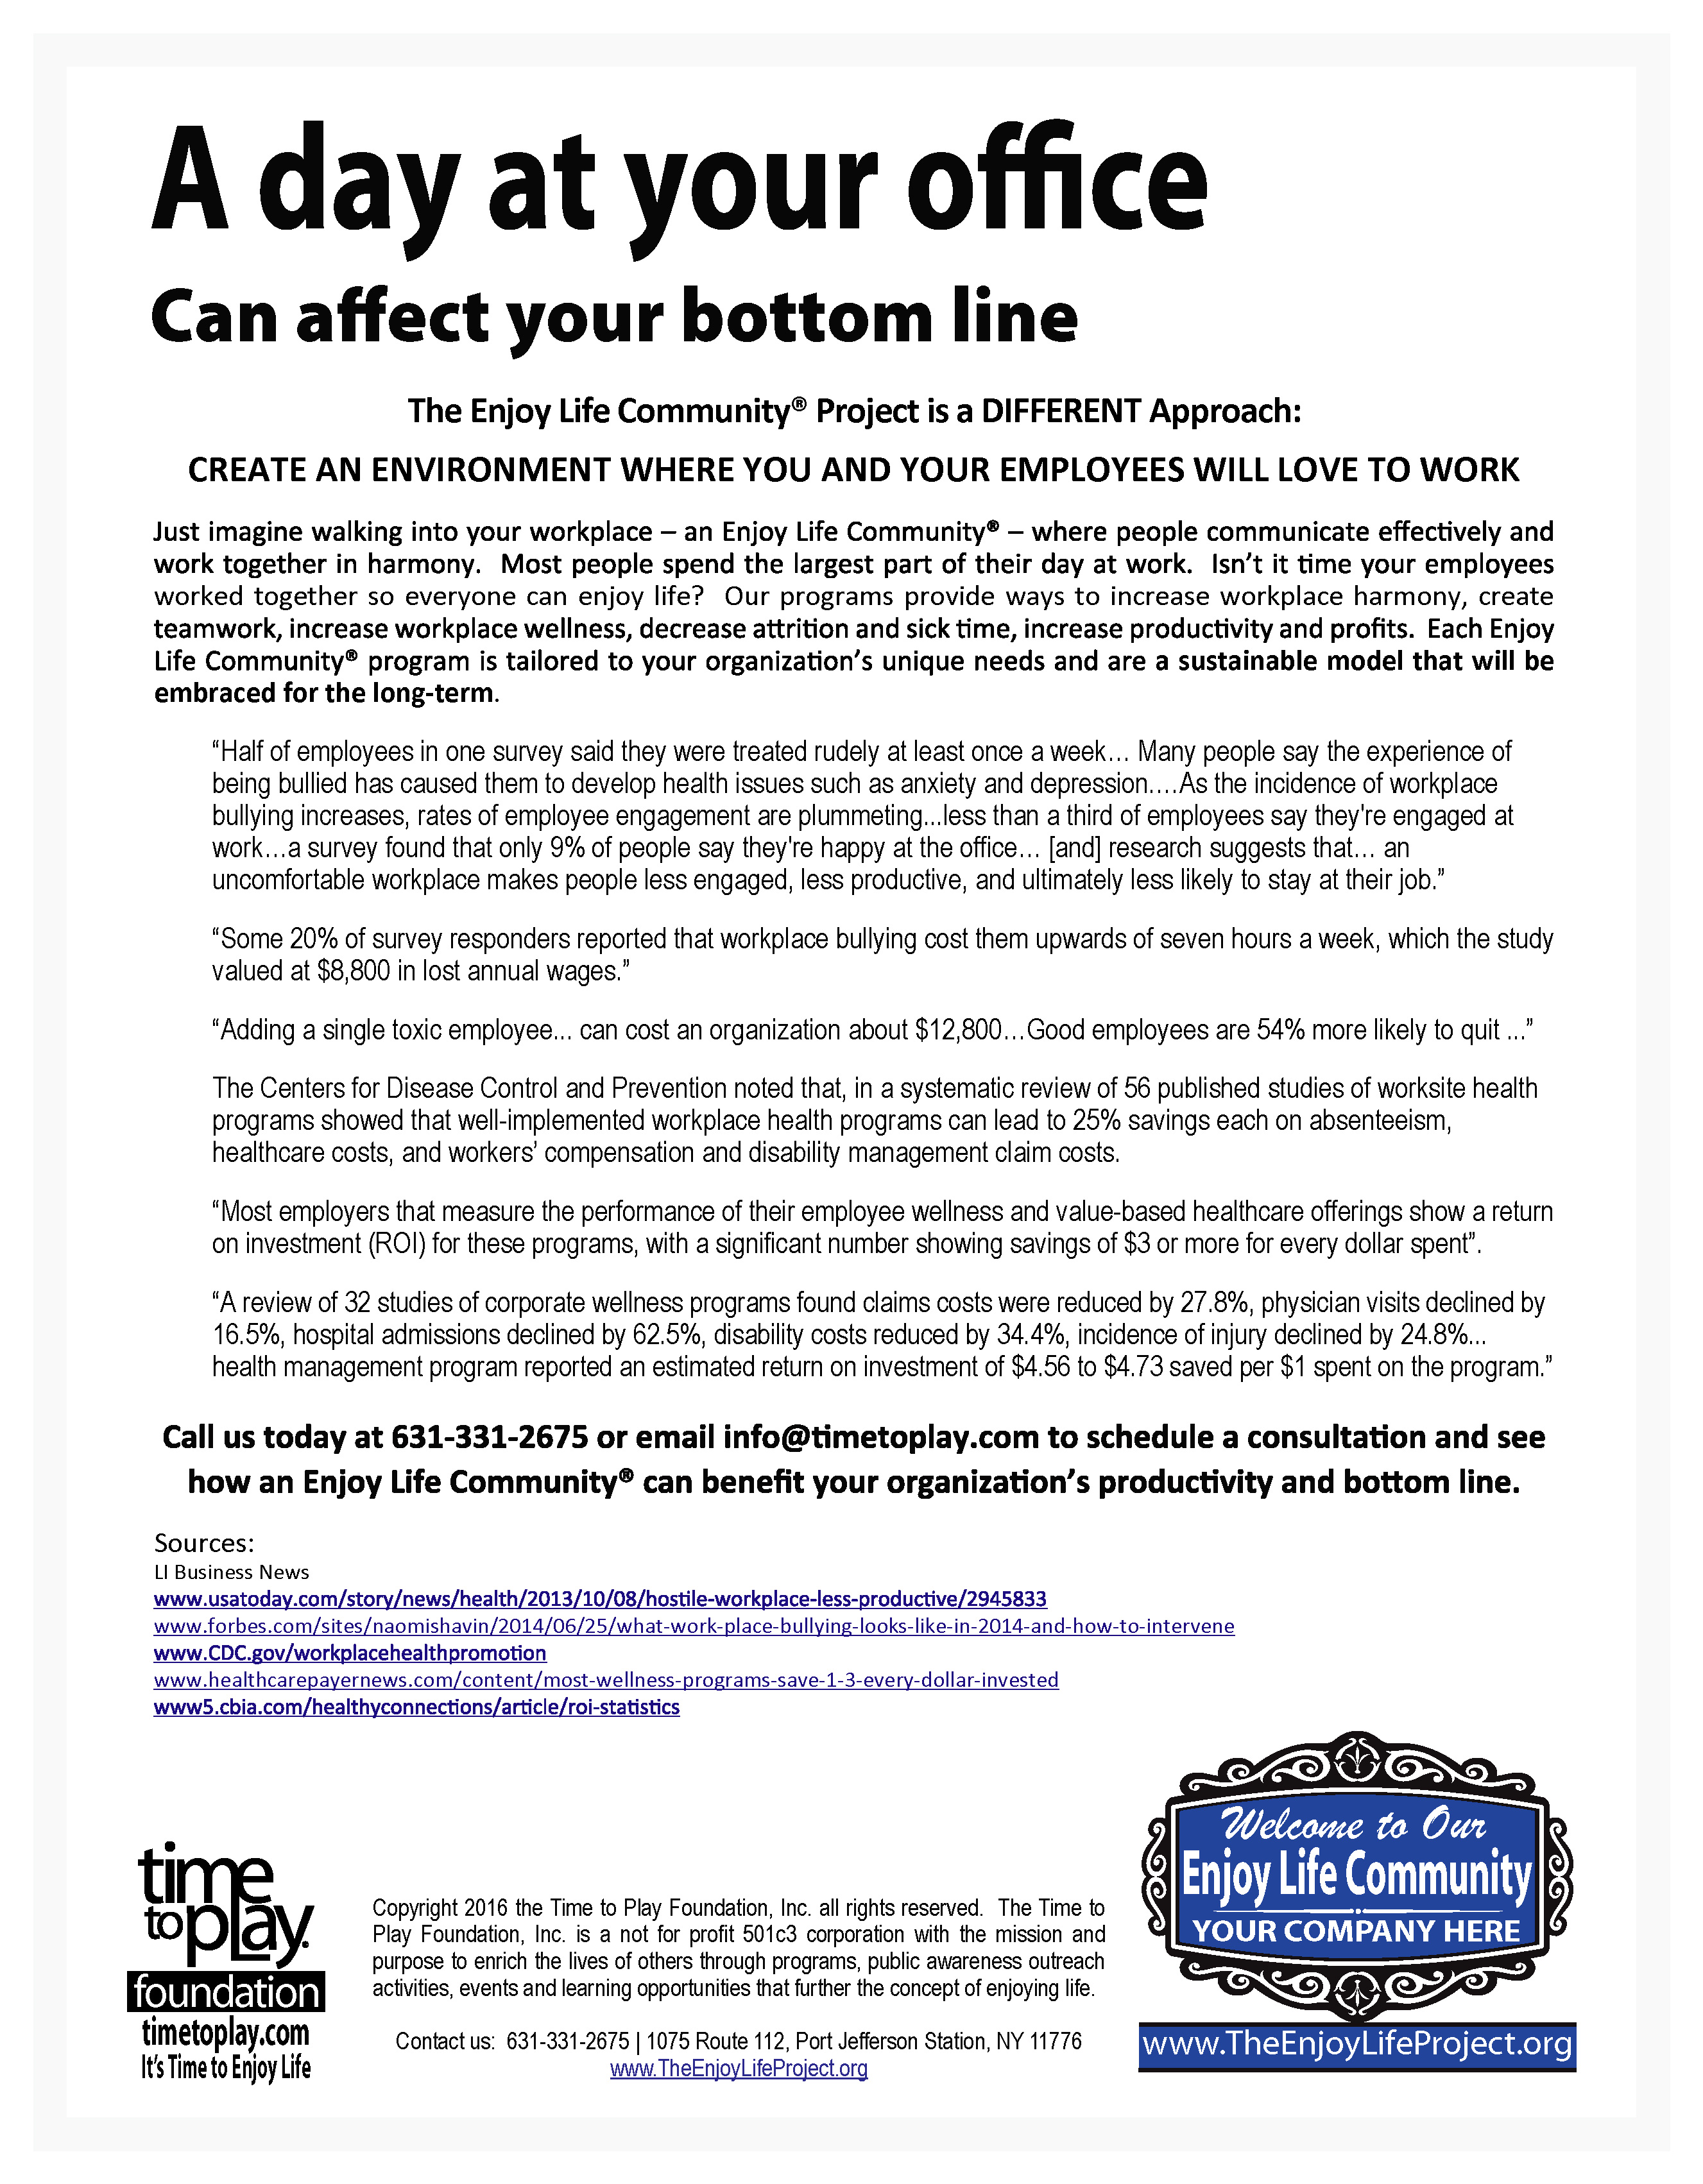 Can Disability Help Your Bottom Line >> Epp Program Overview Time To Play